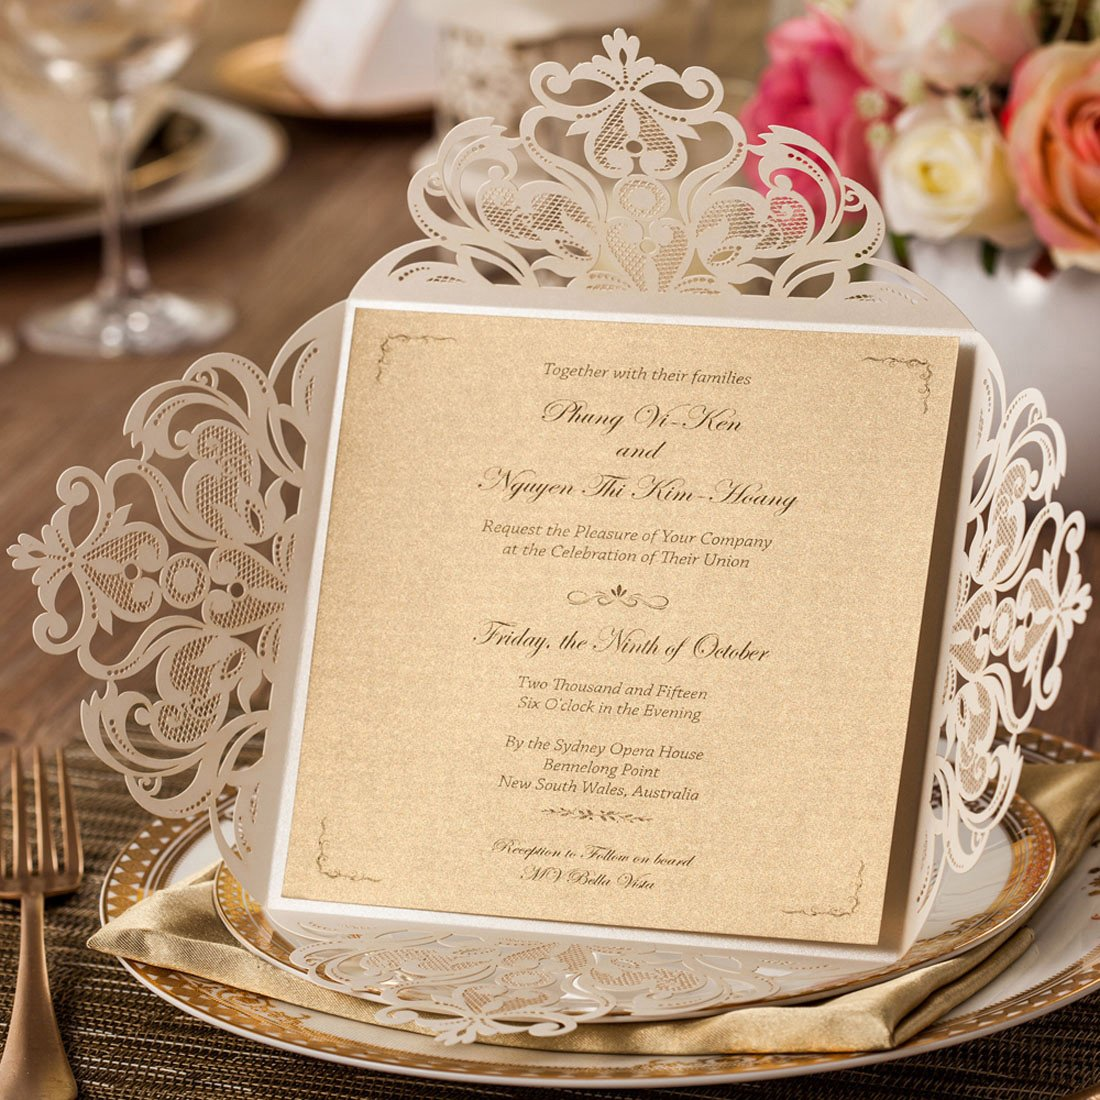 WISHMADE 50x Ivory Laser Cut Square Wedding Invitations Cards with ...